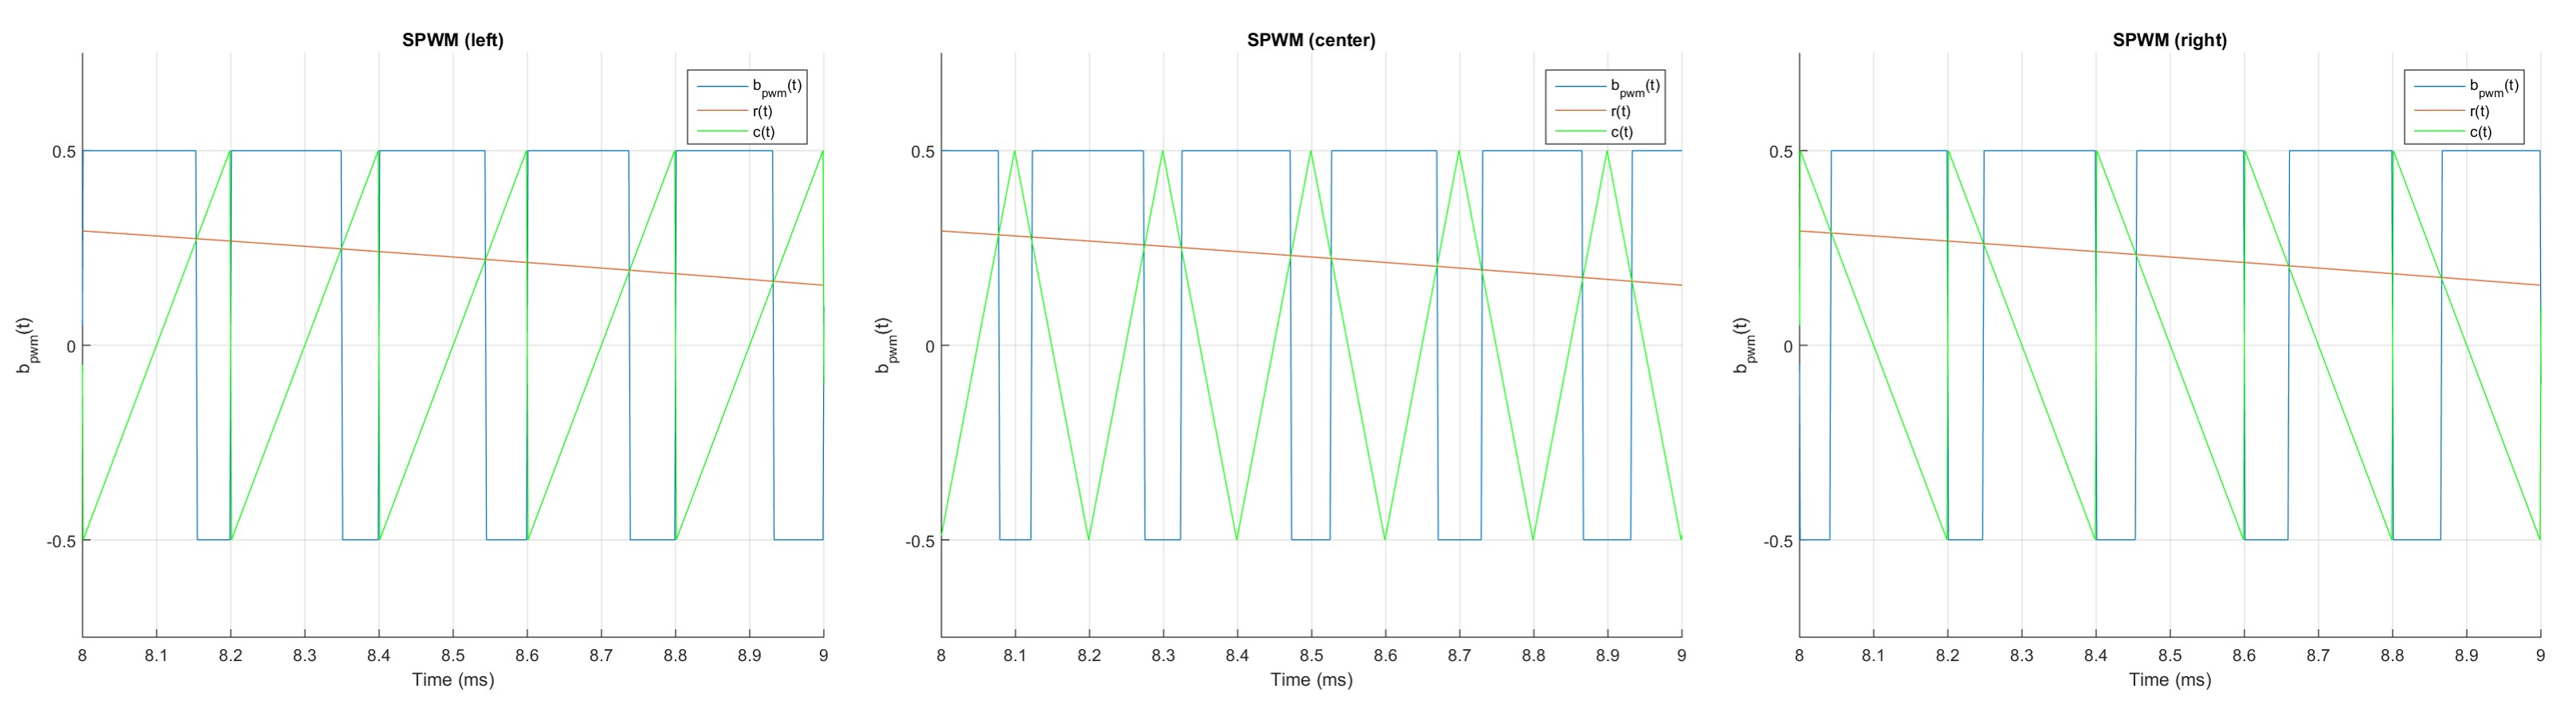 The VFD Series – Part 1: The ups and downs of SPWM – Martin's den